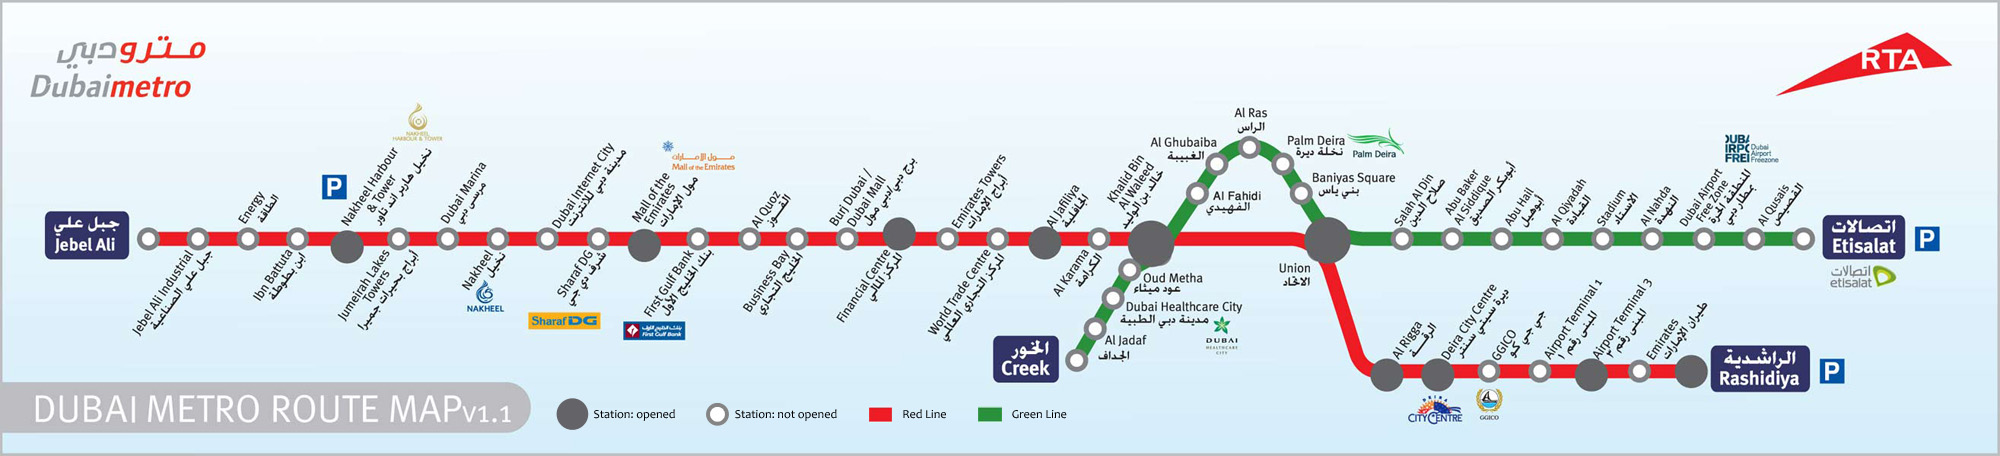 Map - dubaimetro.eu